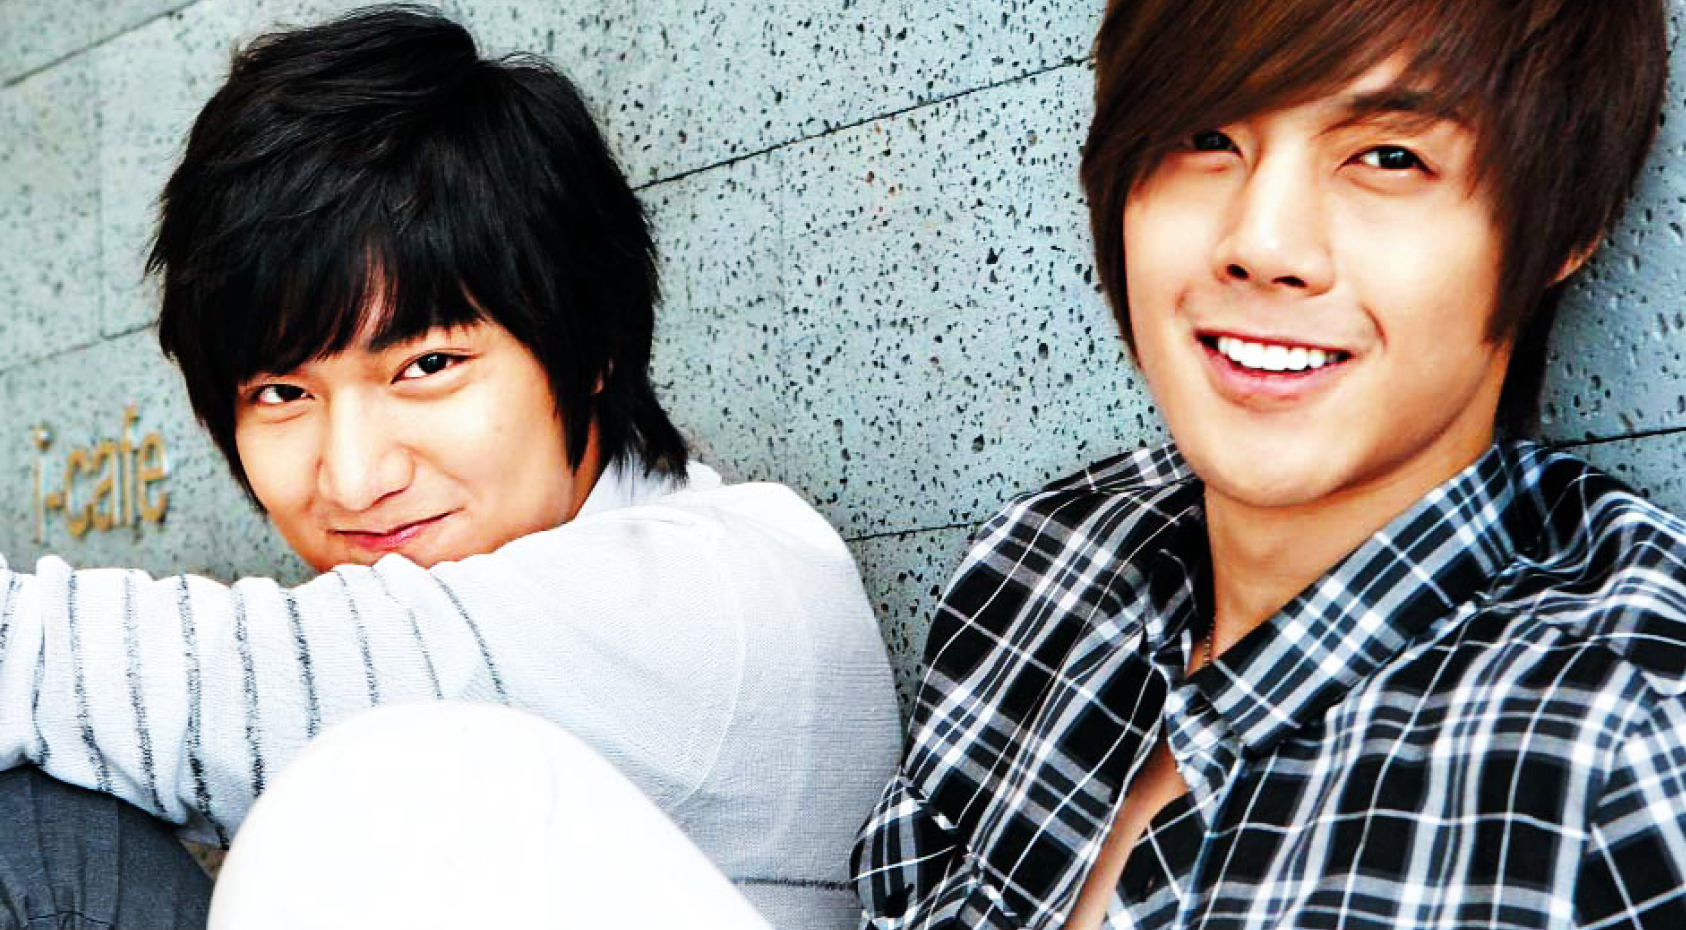 lee minho and kim hyun joong met again in an upcoming new anycall cf